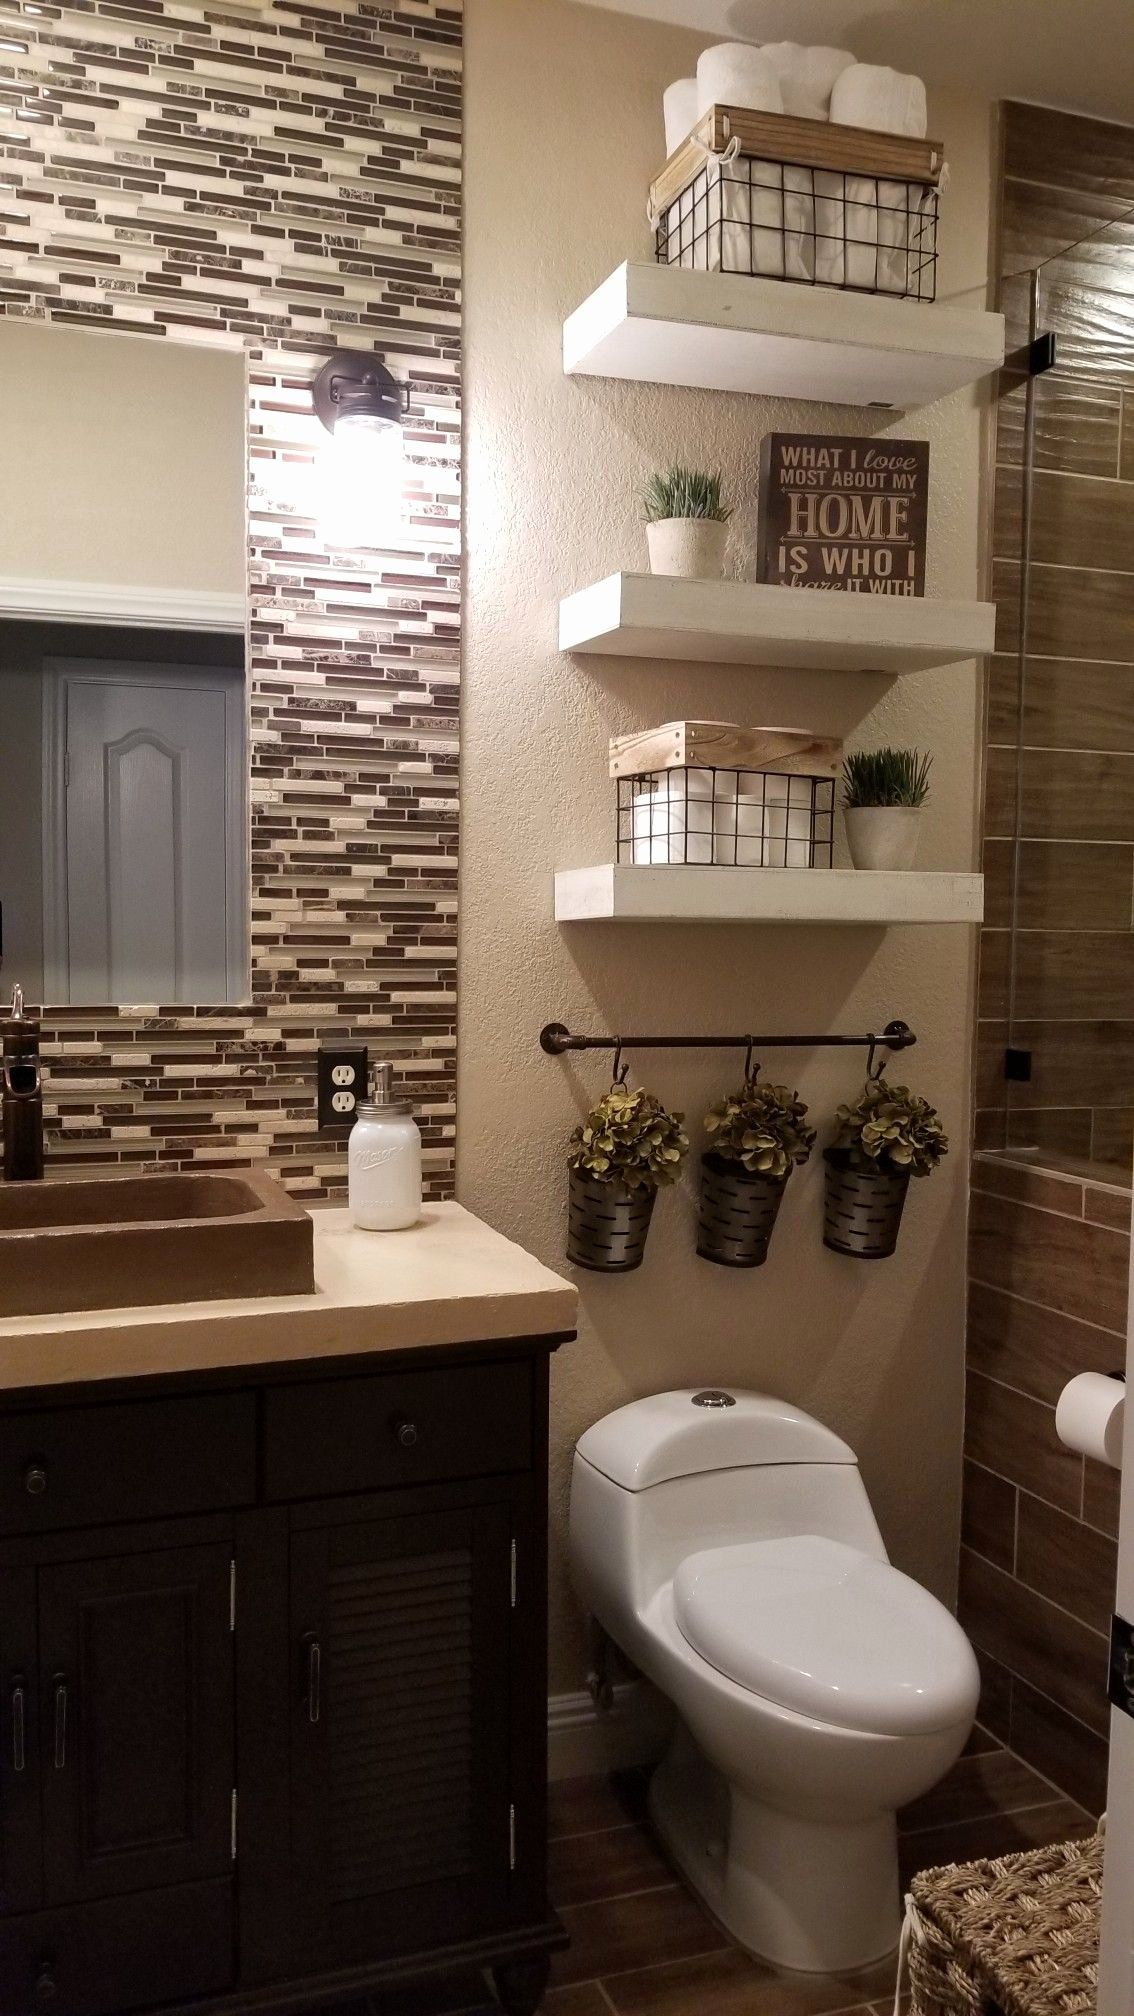 Small Guest Bathroom Ideas Luxury Guest Bathroom Decor | Small Bathroom Remodel, Guest Bathroom Decor, Small Bathroom Decor